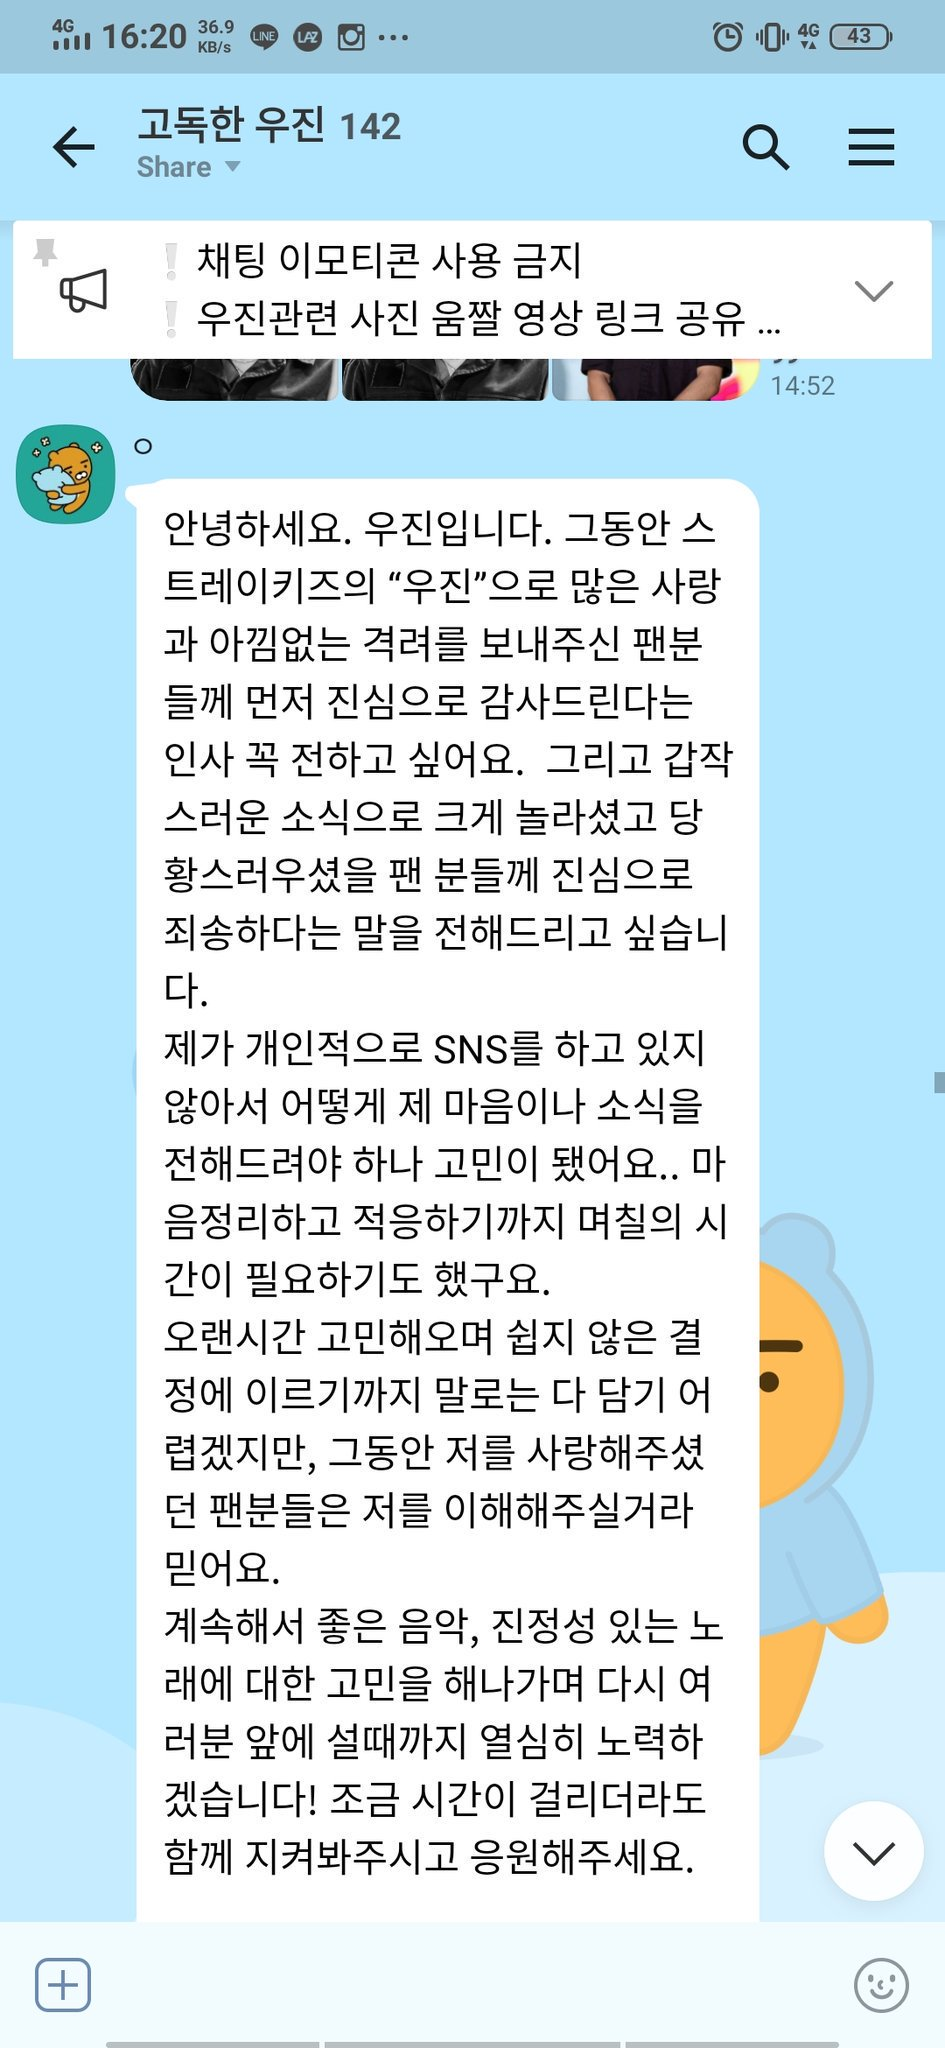 woojin message